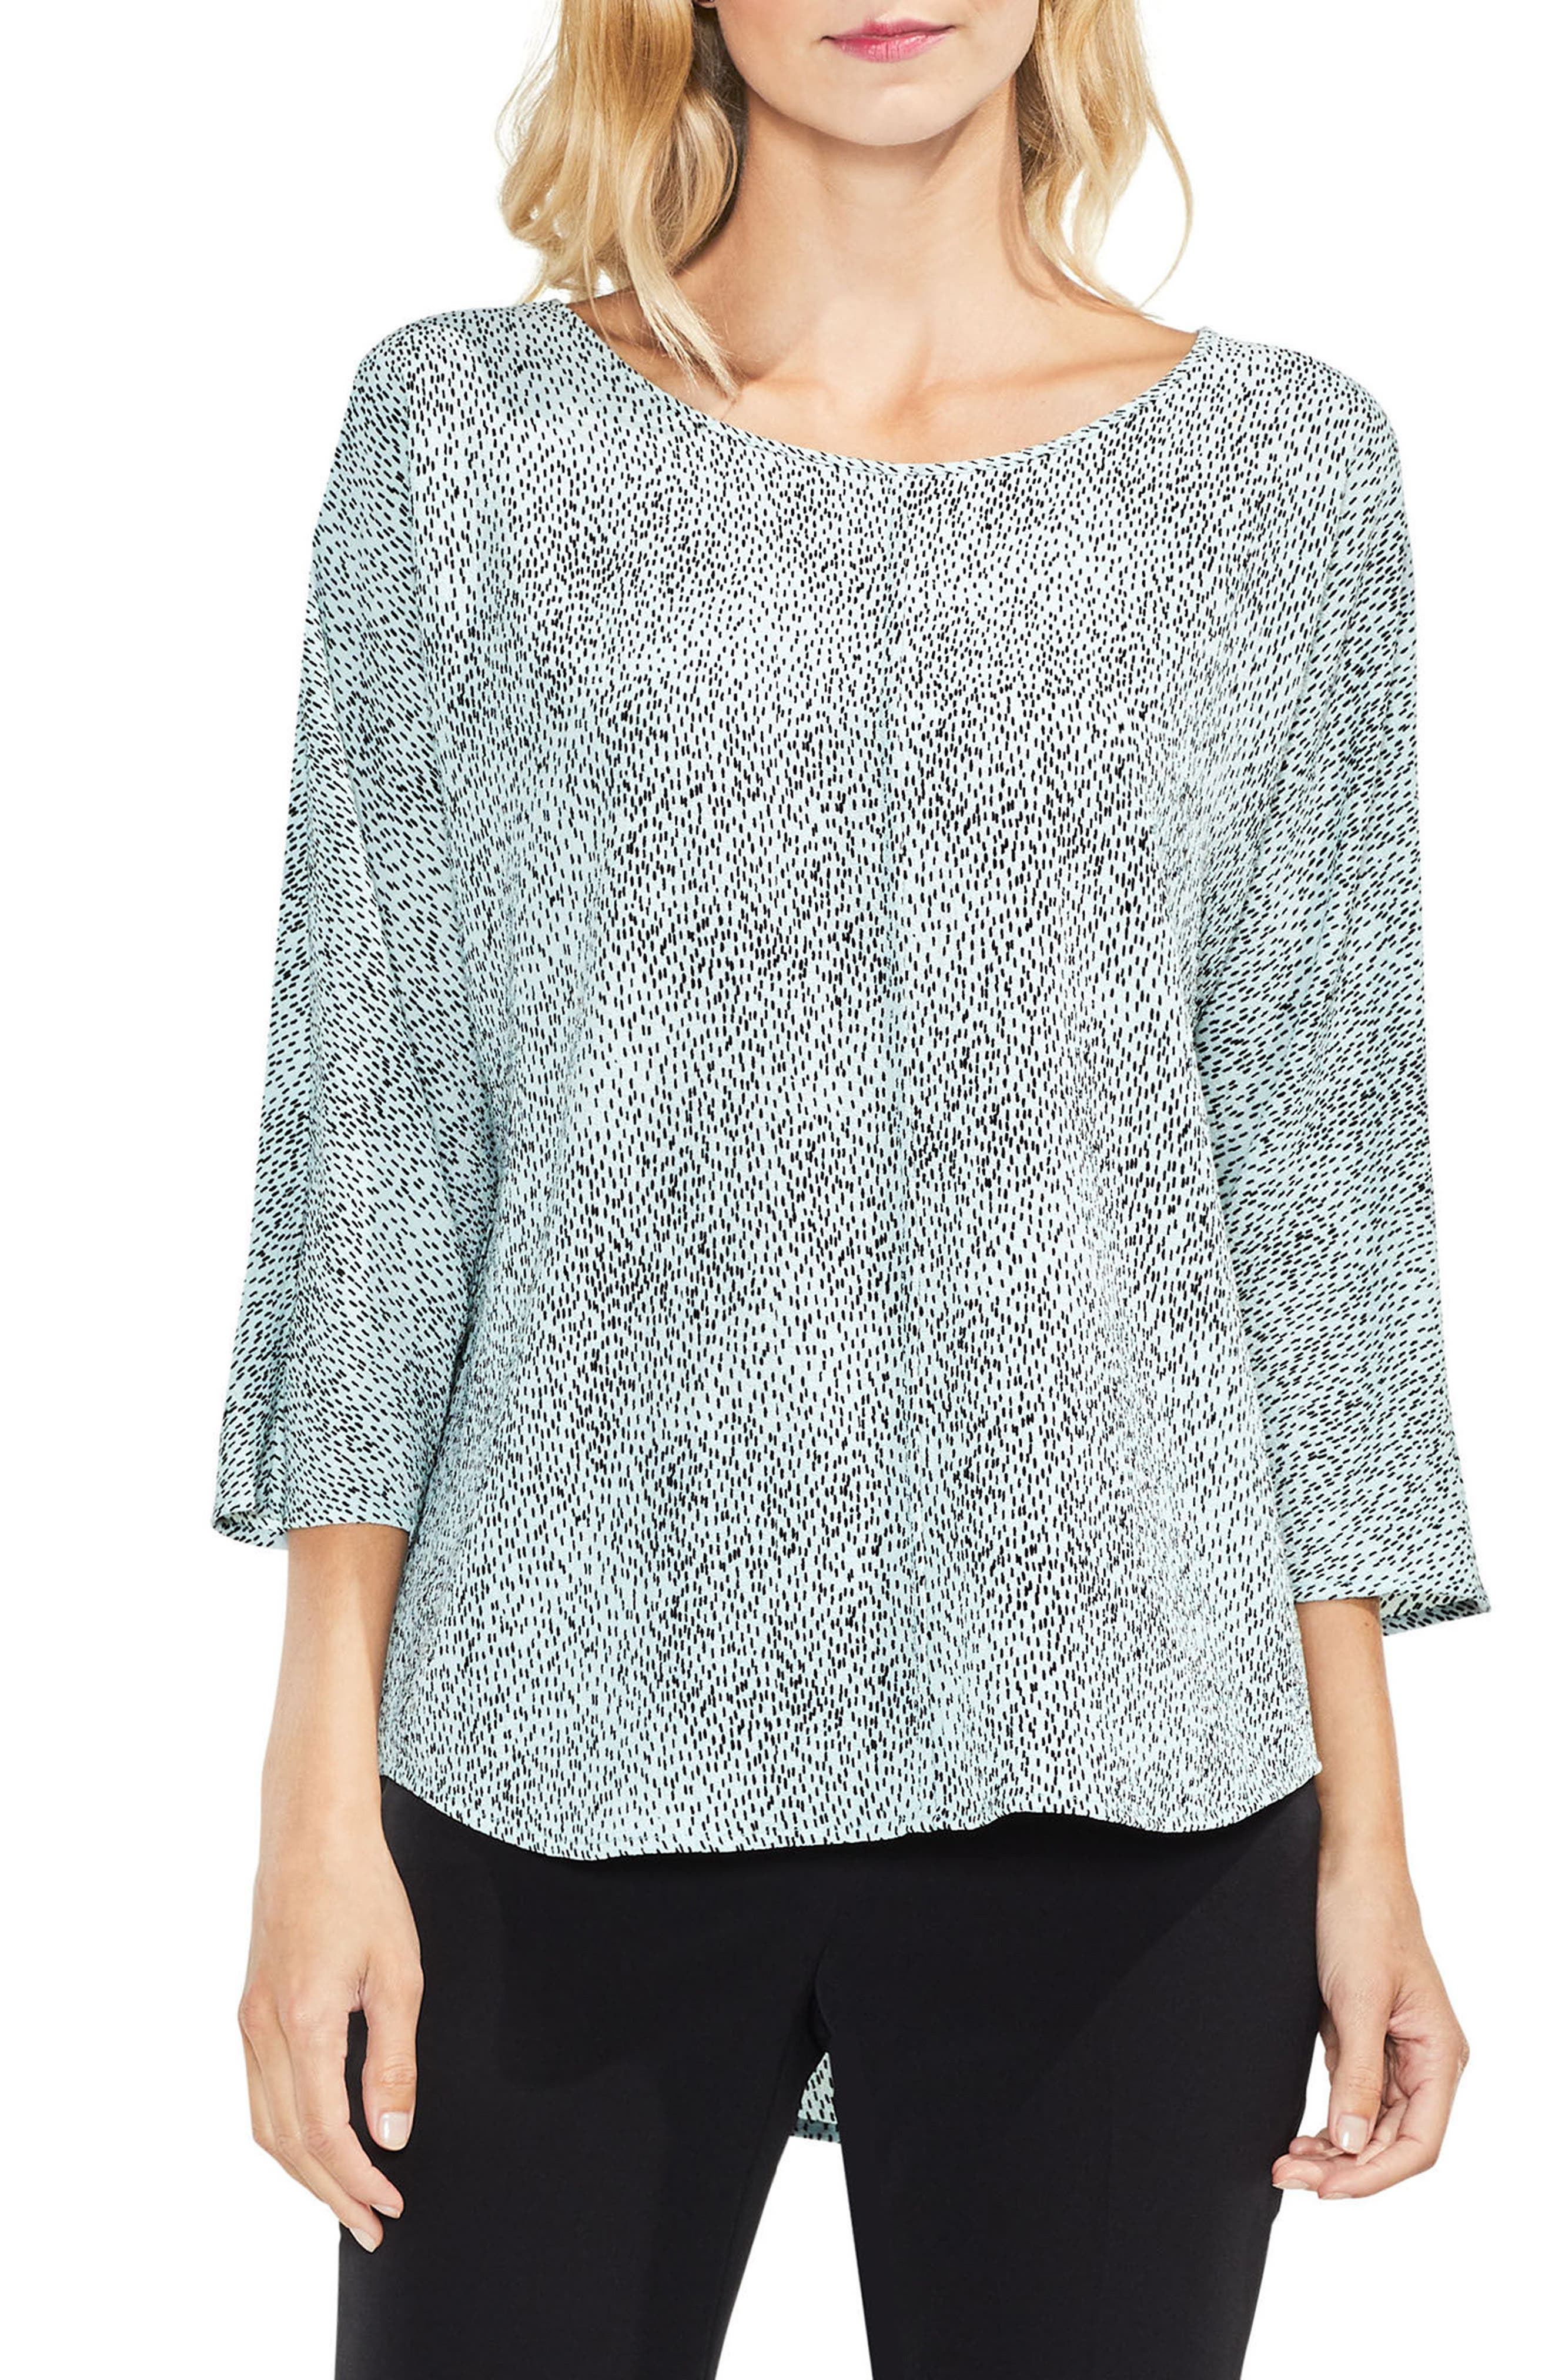 Main Image - Vince Camuto Dotted Elbow Sleeve Top